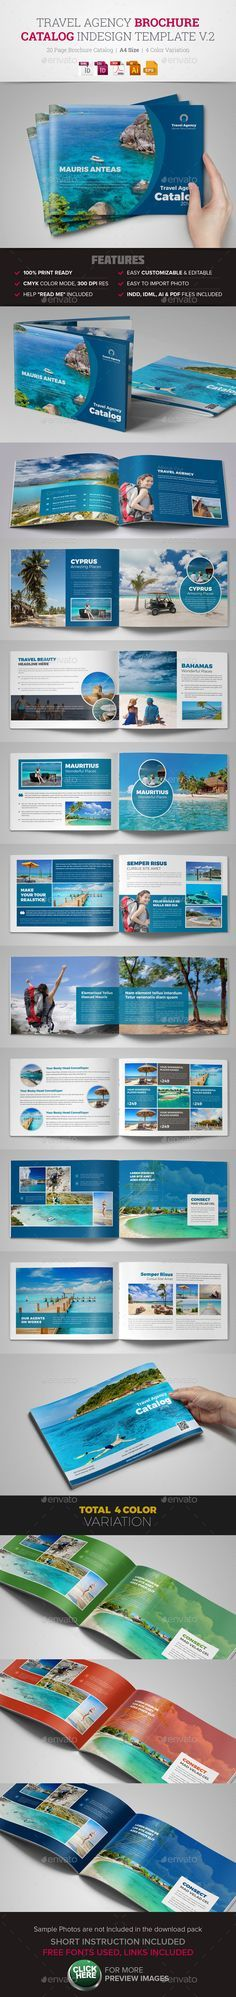 Travel Catalog   Brochure Brochures, Catalog and Brochure template - sample hotel brochure